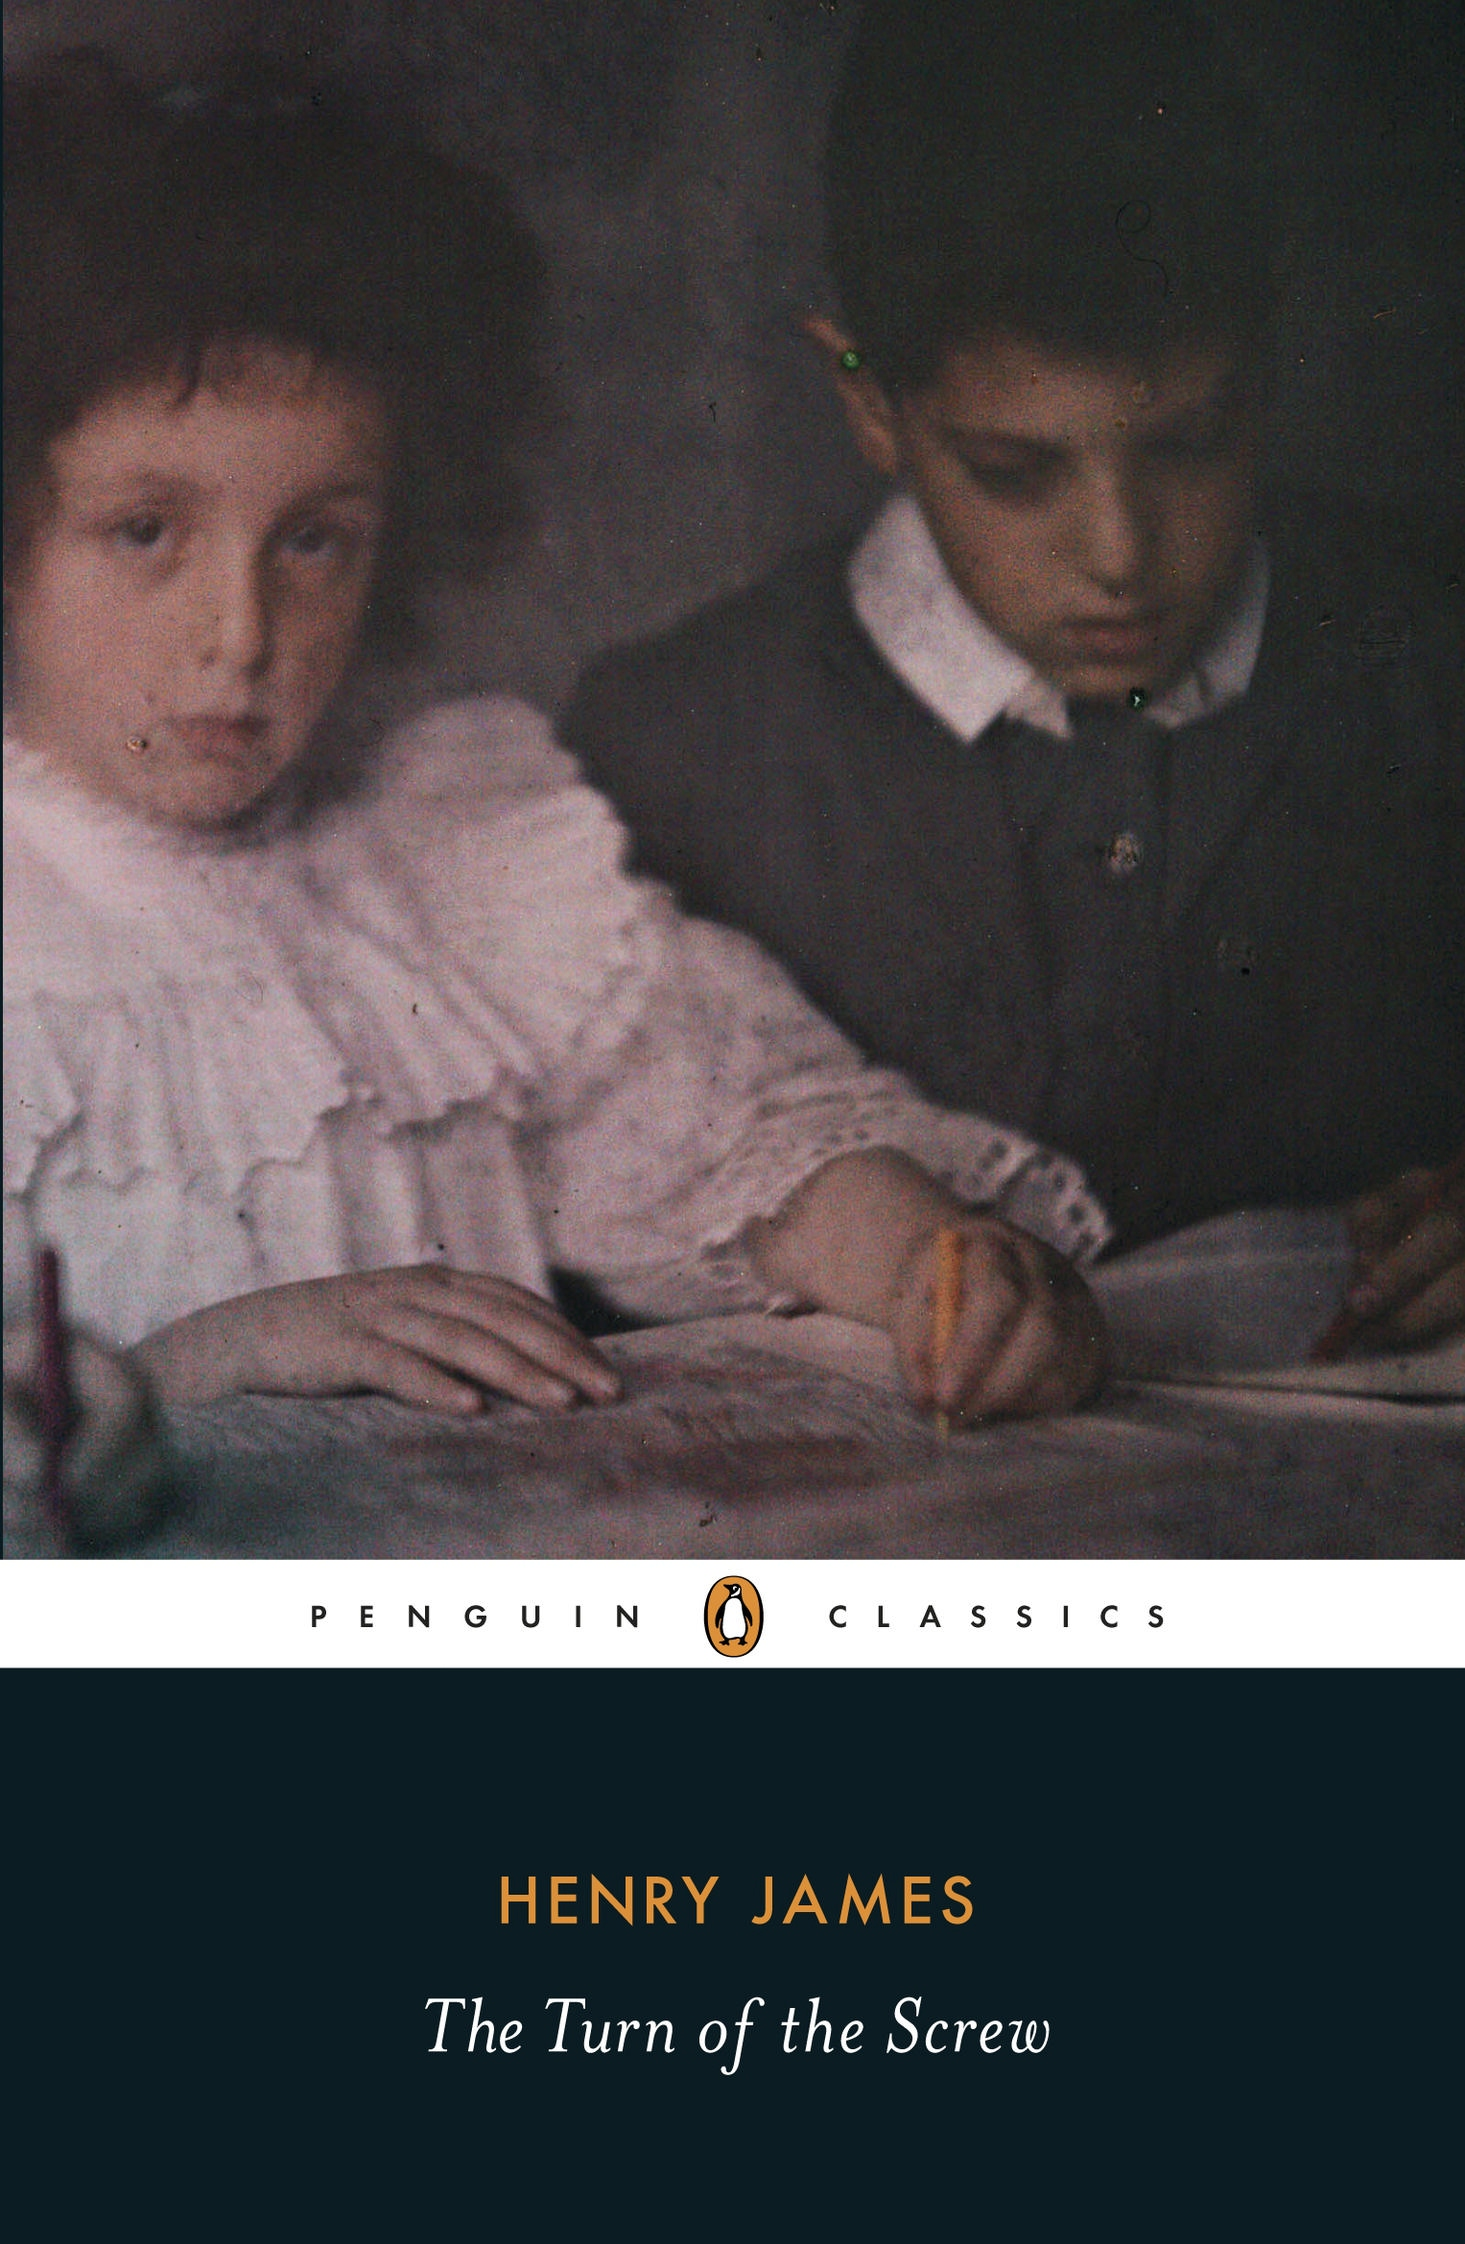 The Turn of the Screw                               By Henry James, 96 pages. Two children and their new governess are at the center of this chilling ghost story.